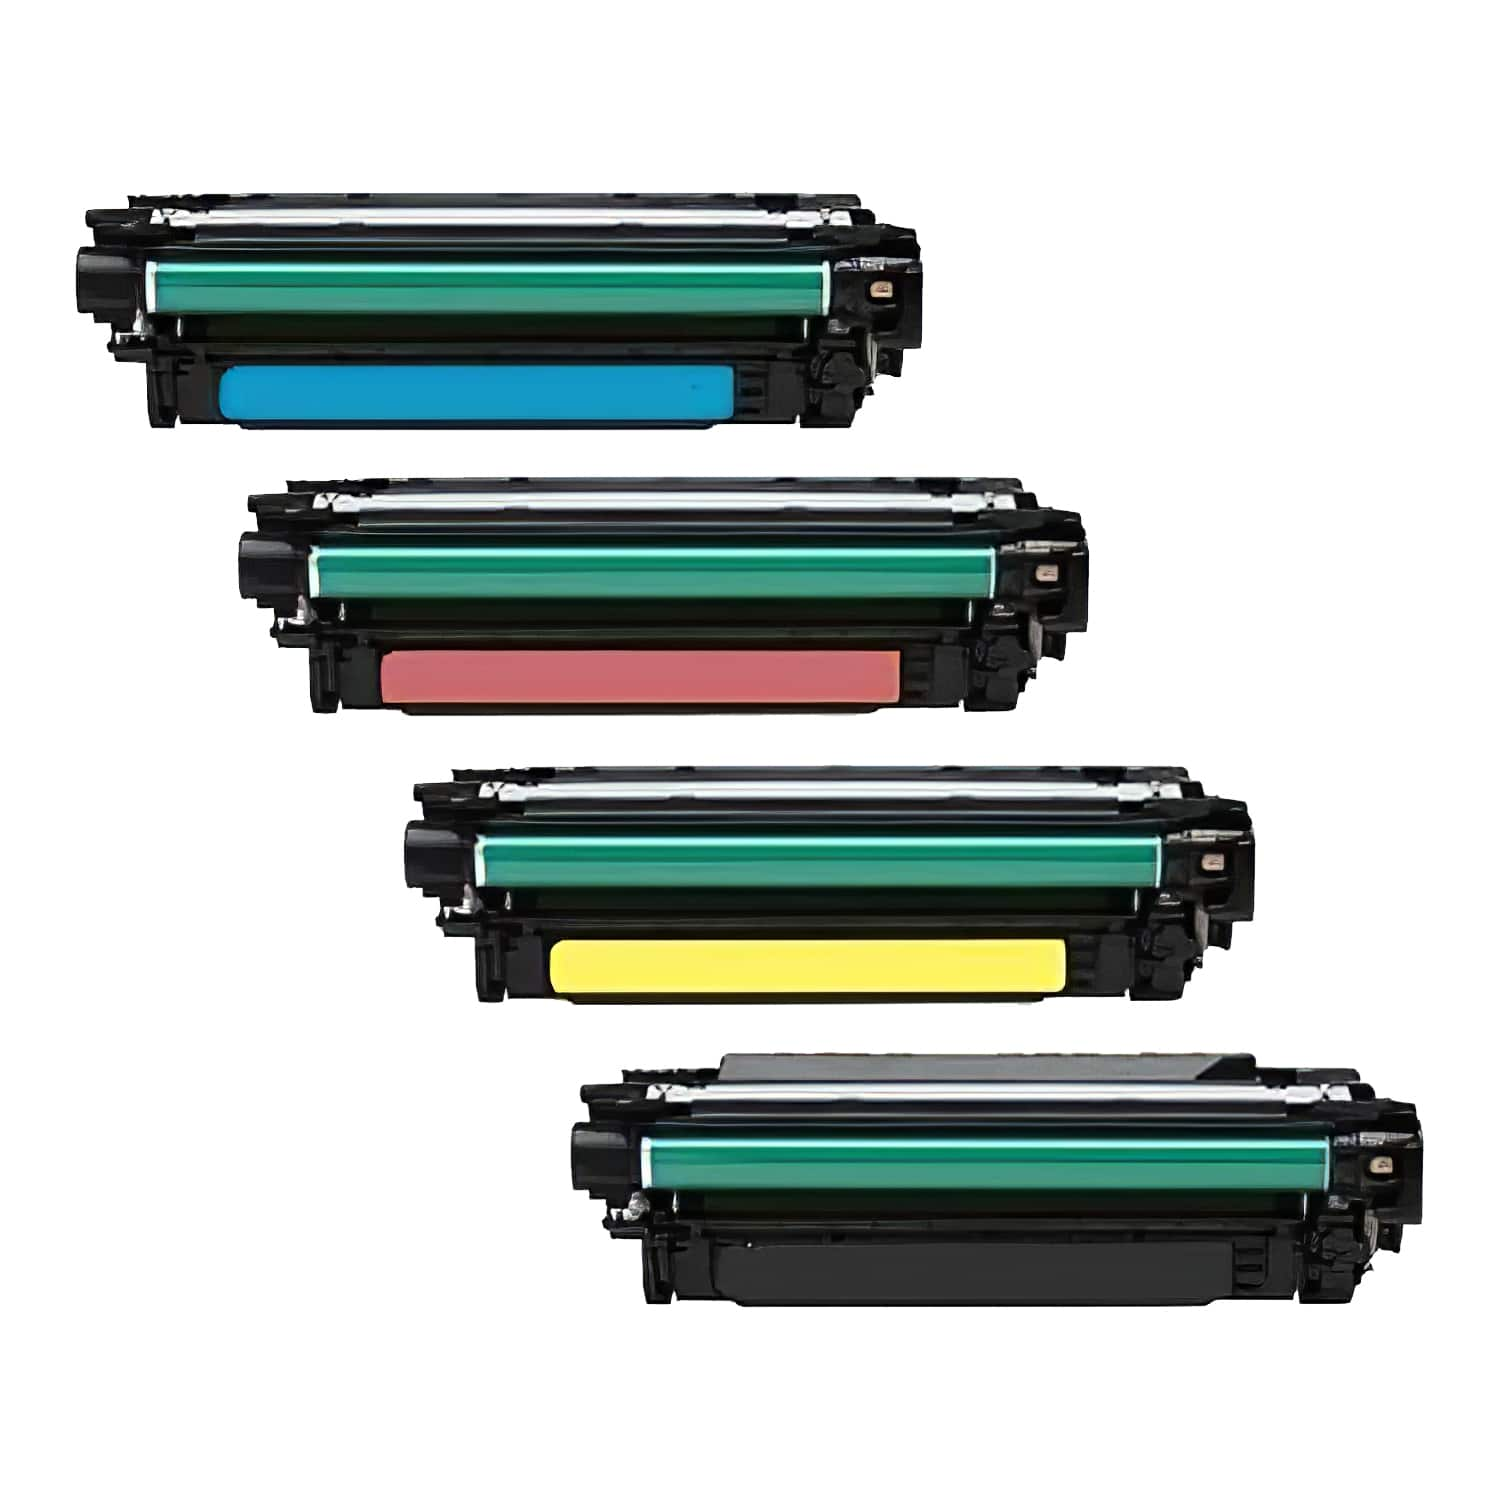 Remanufactured HP Toner Cartridge Bundlpack 507A CMYK Pack - 4 Cartridges